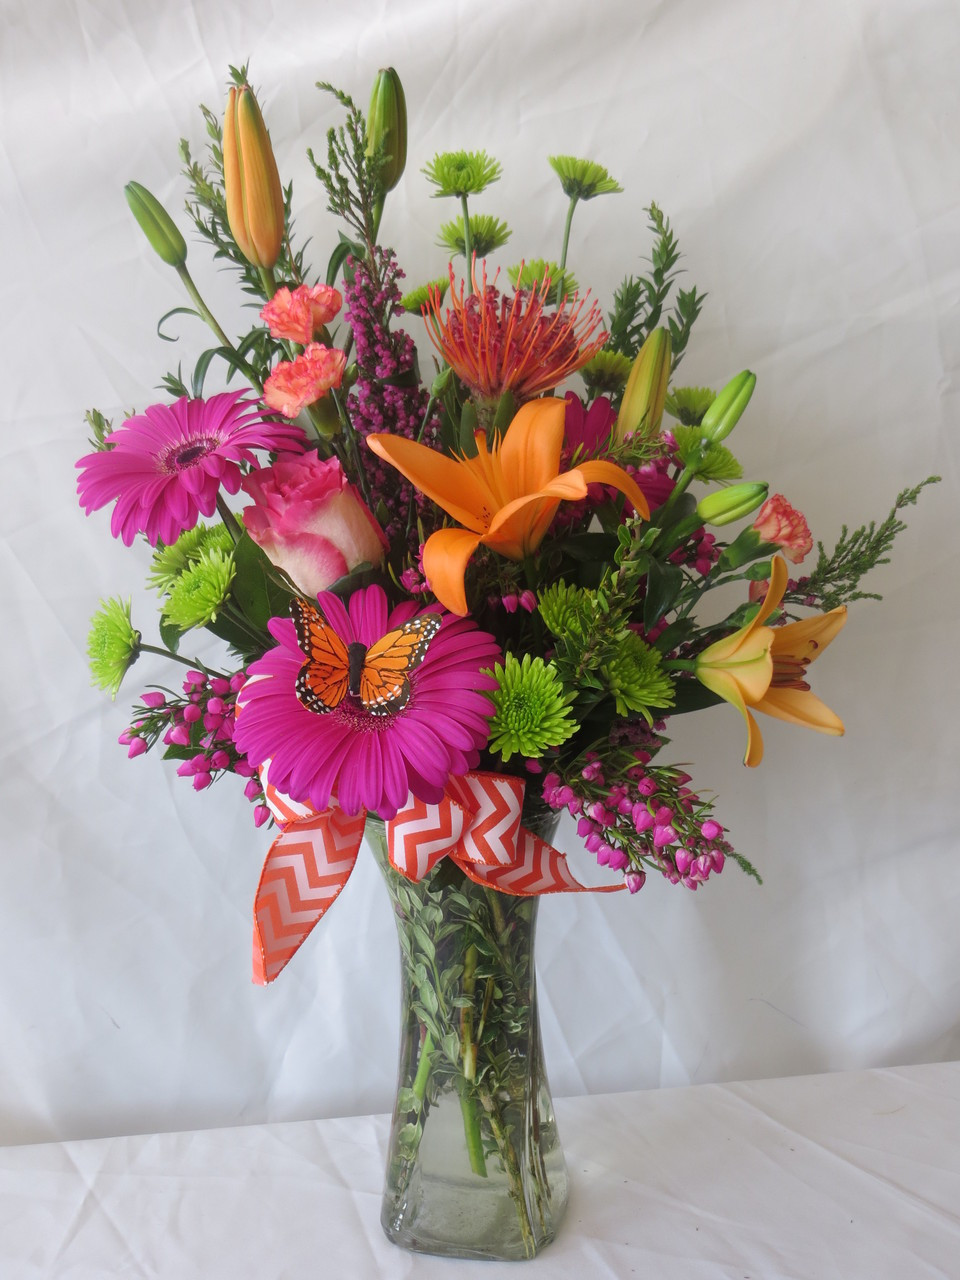 Hot Pink Flowers With Orange Lilies With A Butterfly In A Vase